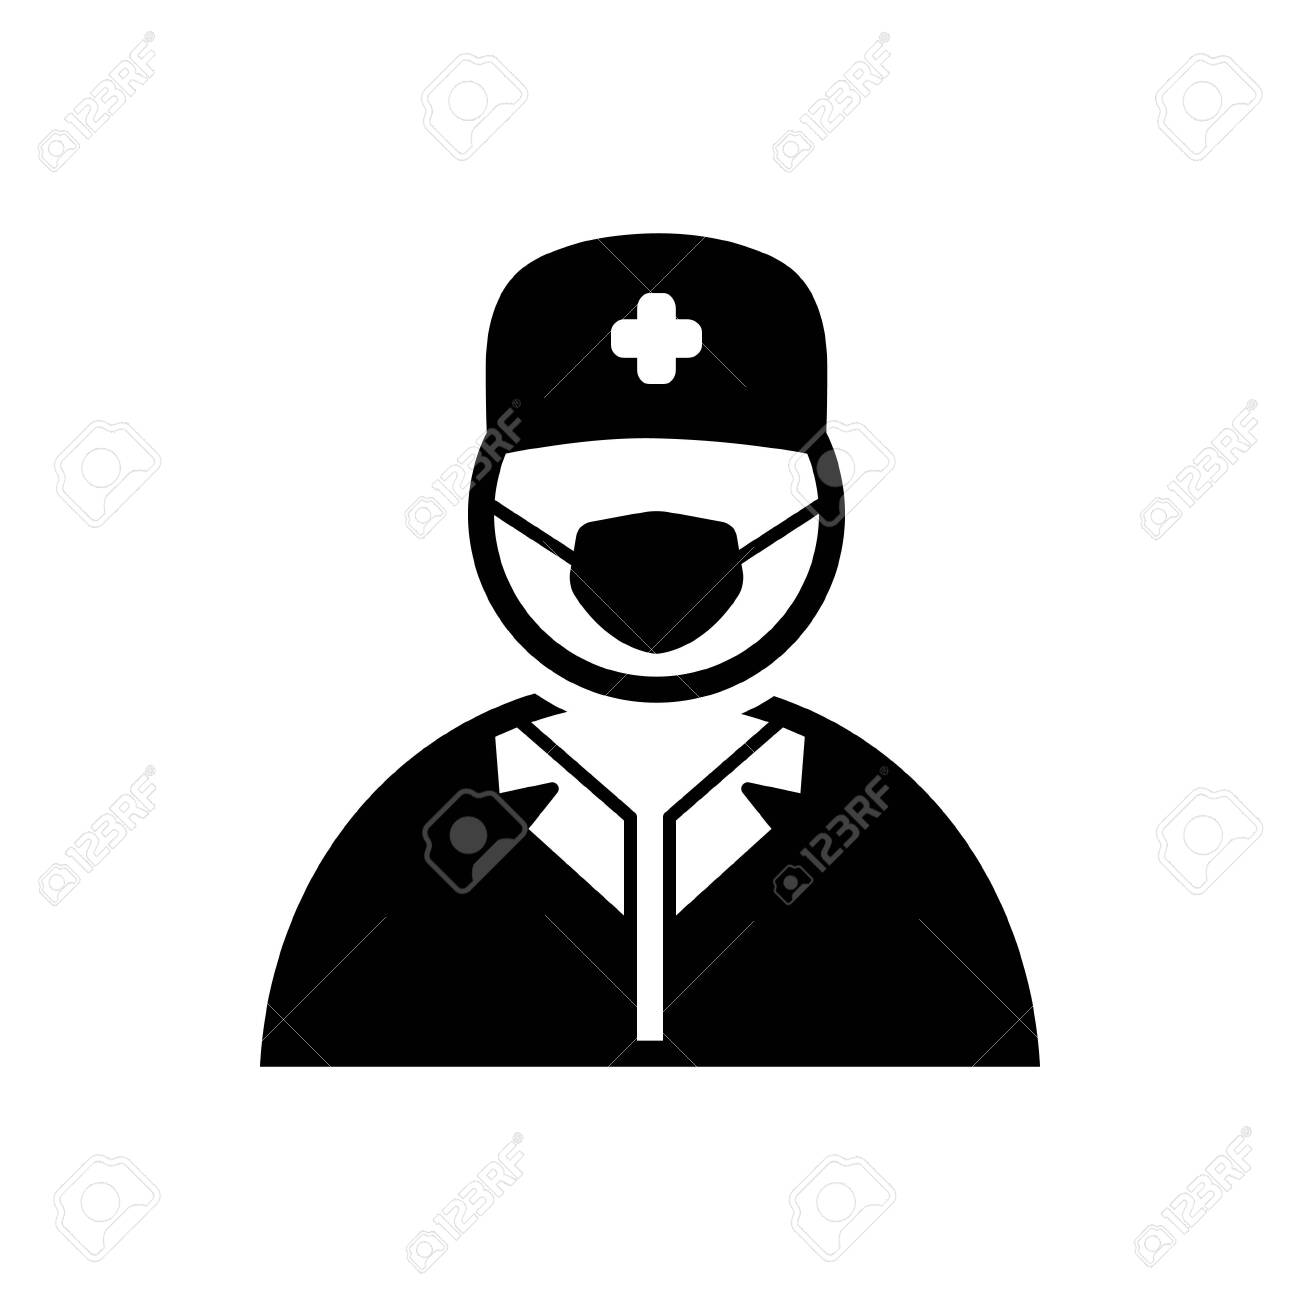 Surgeon Doctor Icon Royalty Free Cliparts Vectors And Stock Illustration Image 132398285